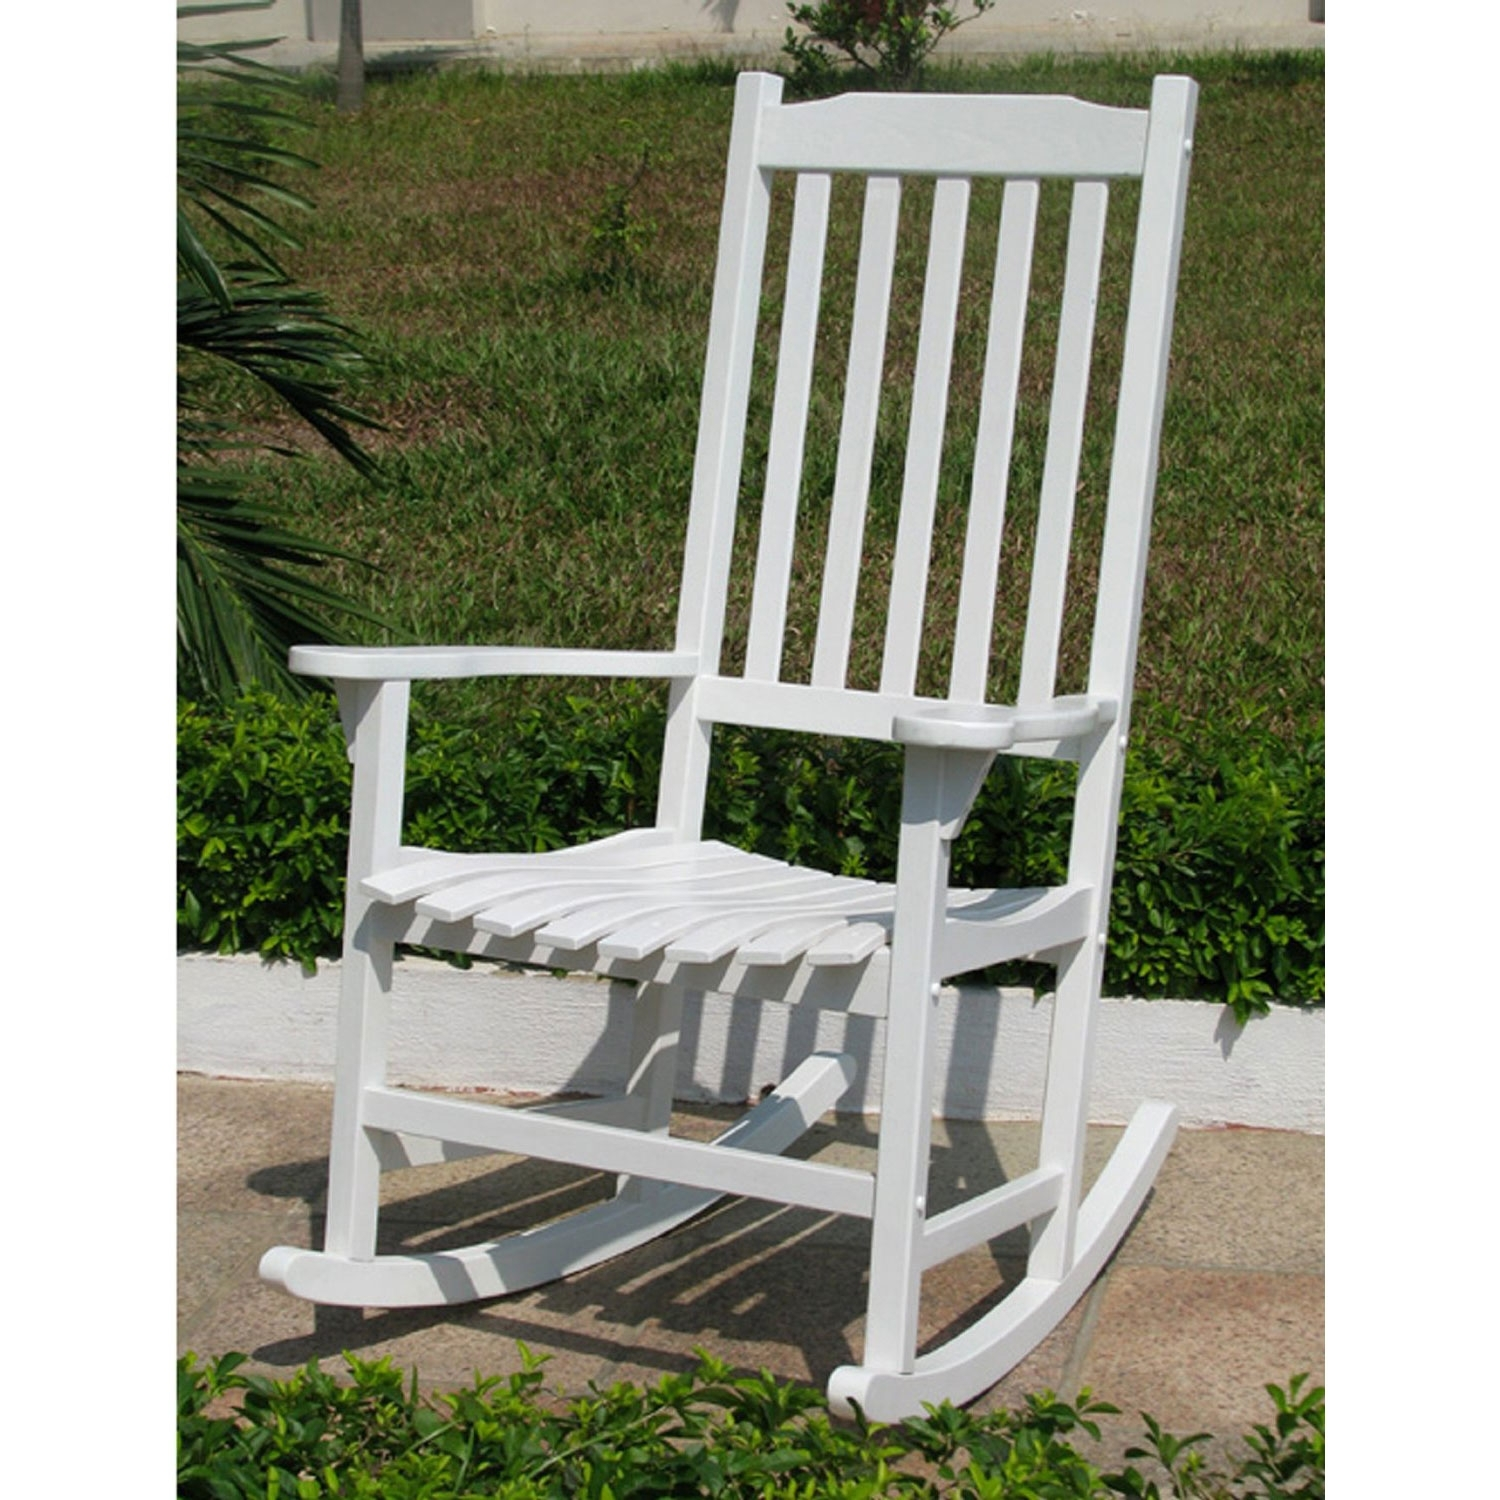 Lovely Cheap Patio Chairs Semco Recycled Plastic Rocking Chair Inside Inexpensive Patio Rocking Chairs (View 4 of 15)